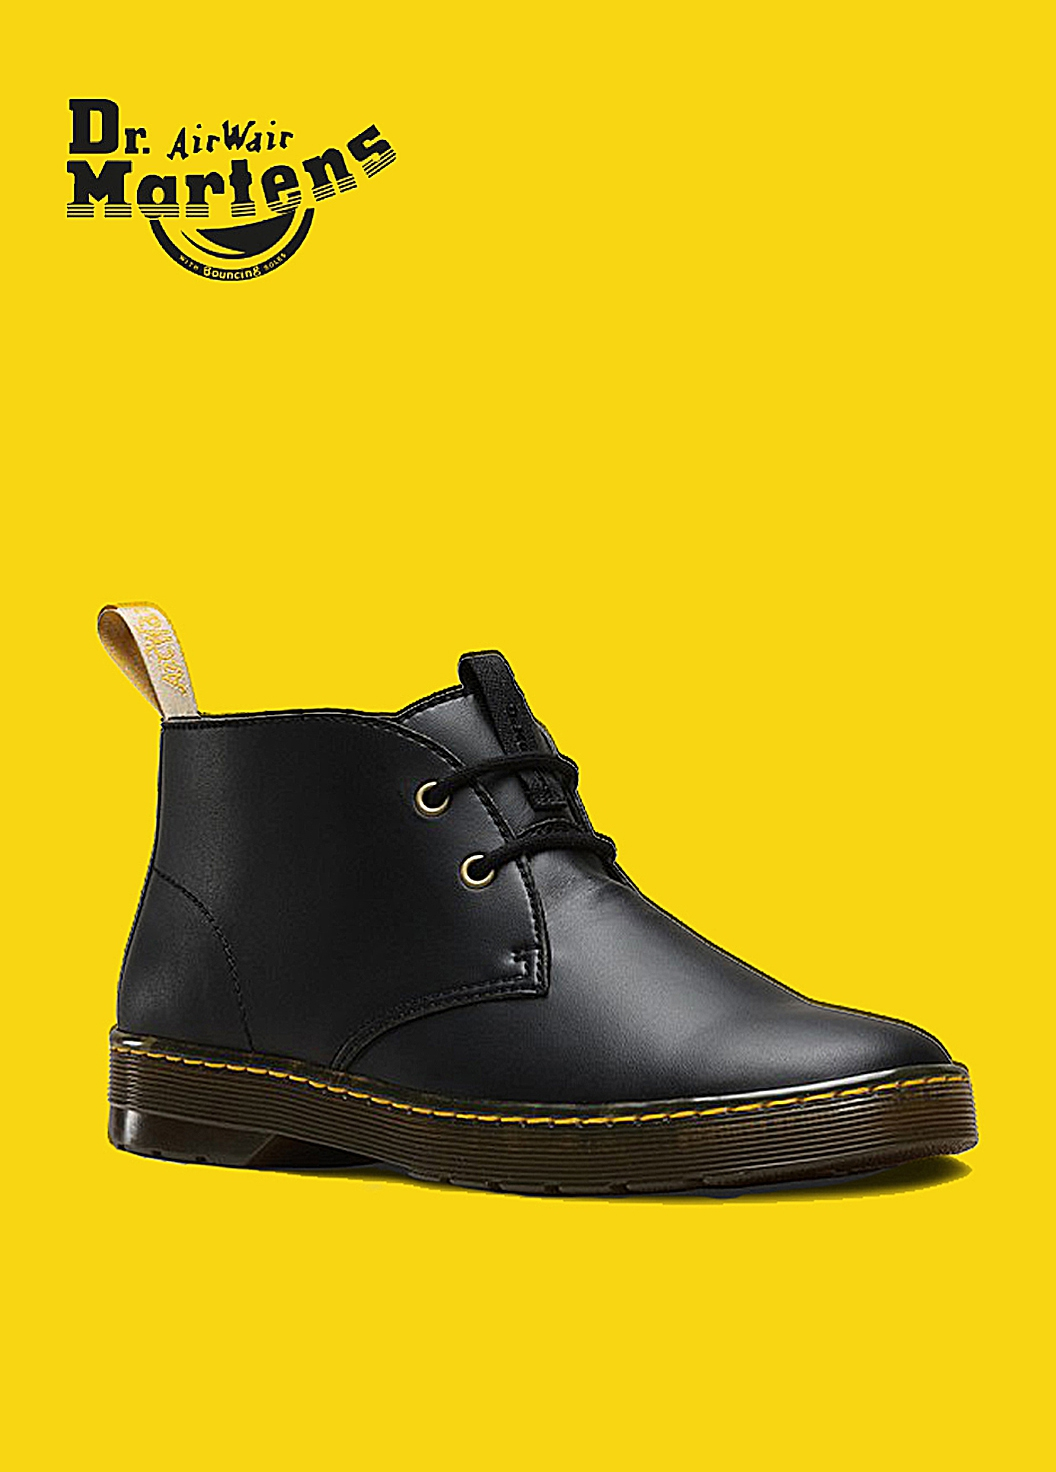 Vegan DR. MARTENS | Back in stock! | Vegan Boots by DR. MARTENS Shop online!